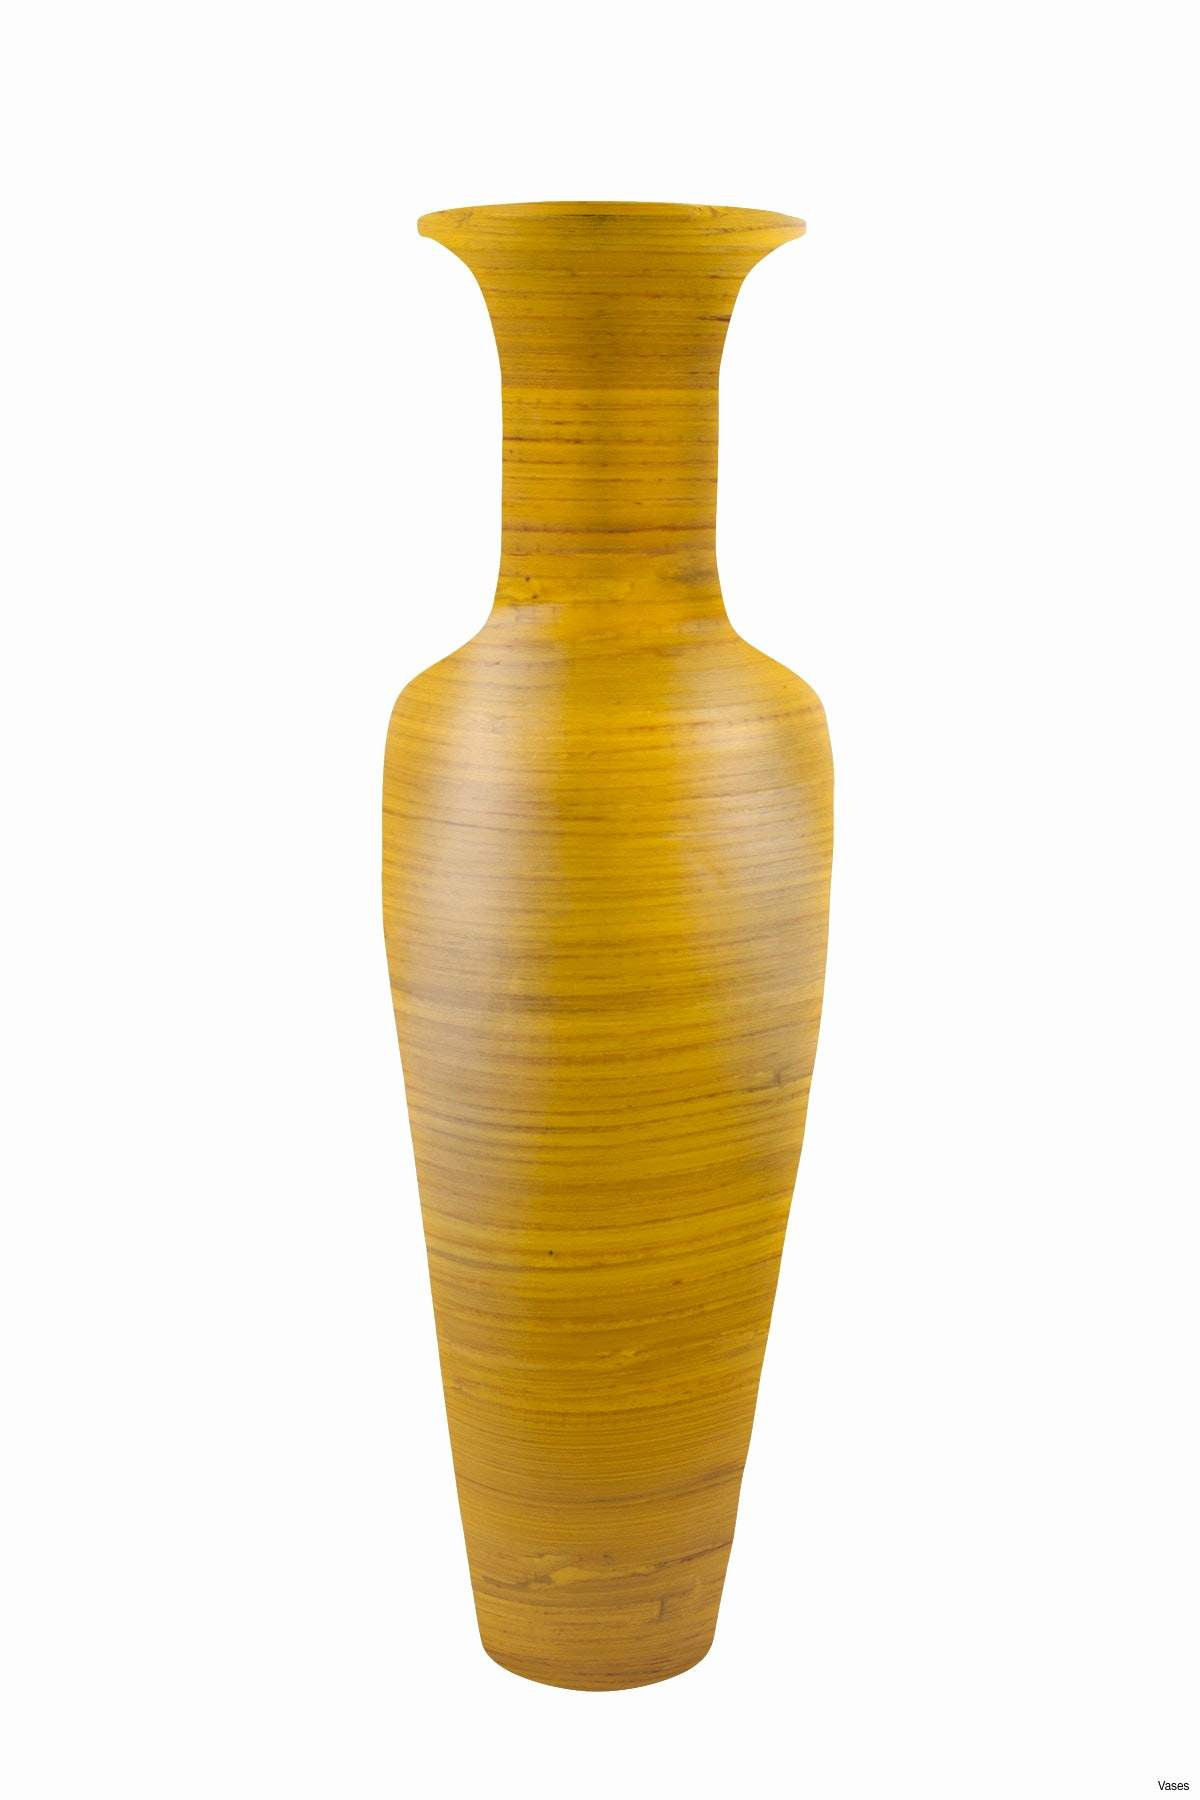 bamboo vase tall of floor vase set of 3 collection area floor rugs new joaquin gray inside area floor rugs new joaquin gray vases set 3 2h pottery floor i 0d